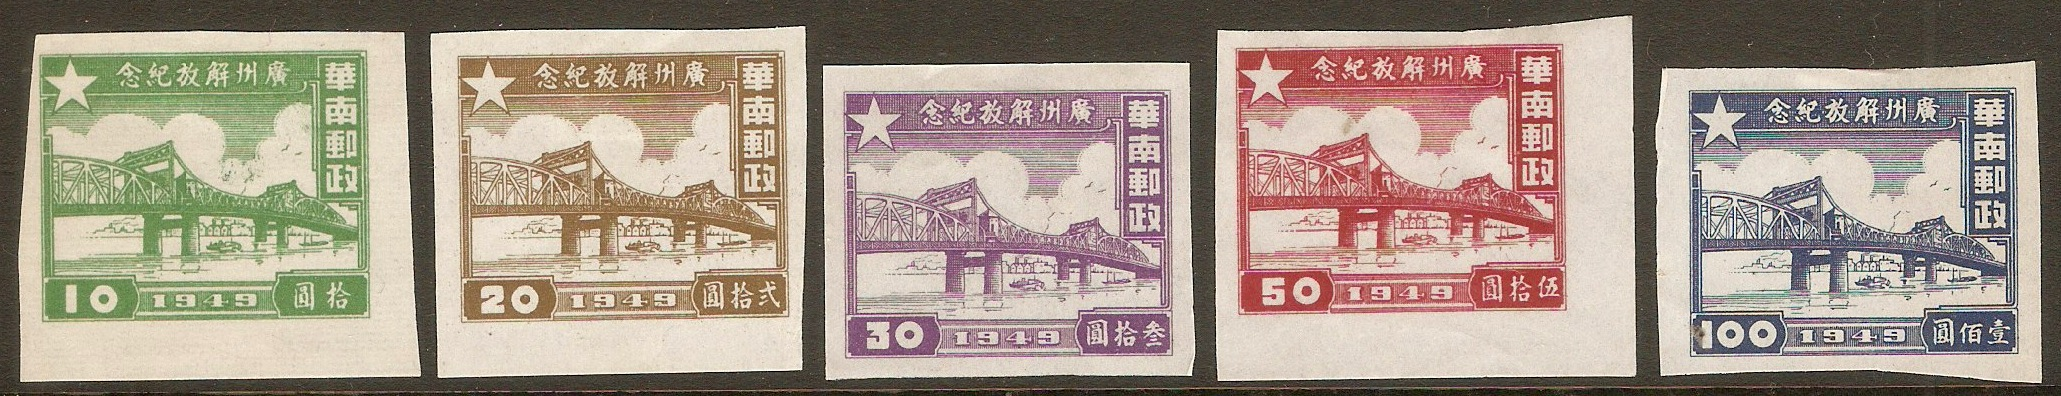 South China 1949 Liberation of Guangzhou set. SGCC201-SGCC205.